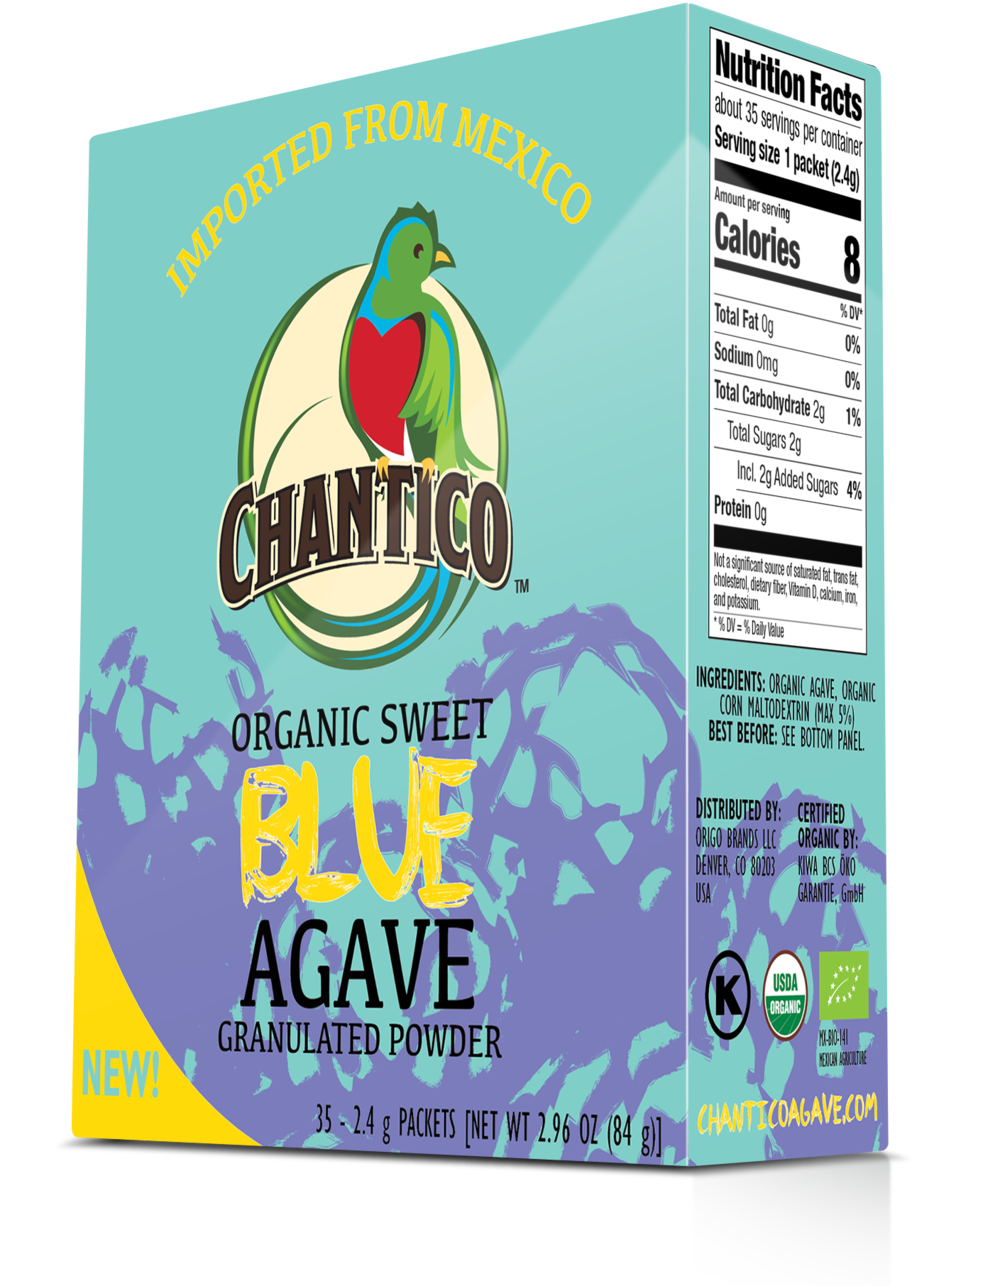 Origo_ChanticoAgave_powder.png